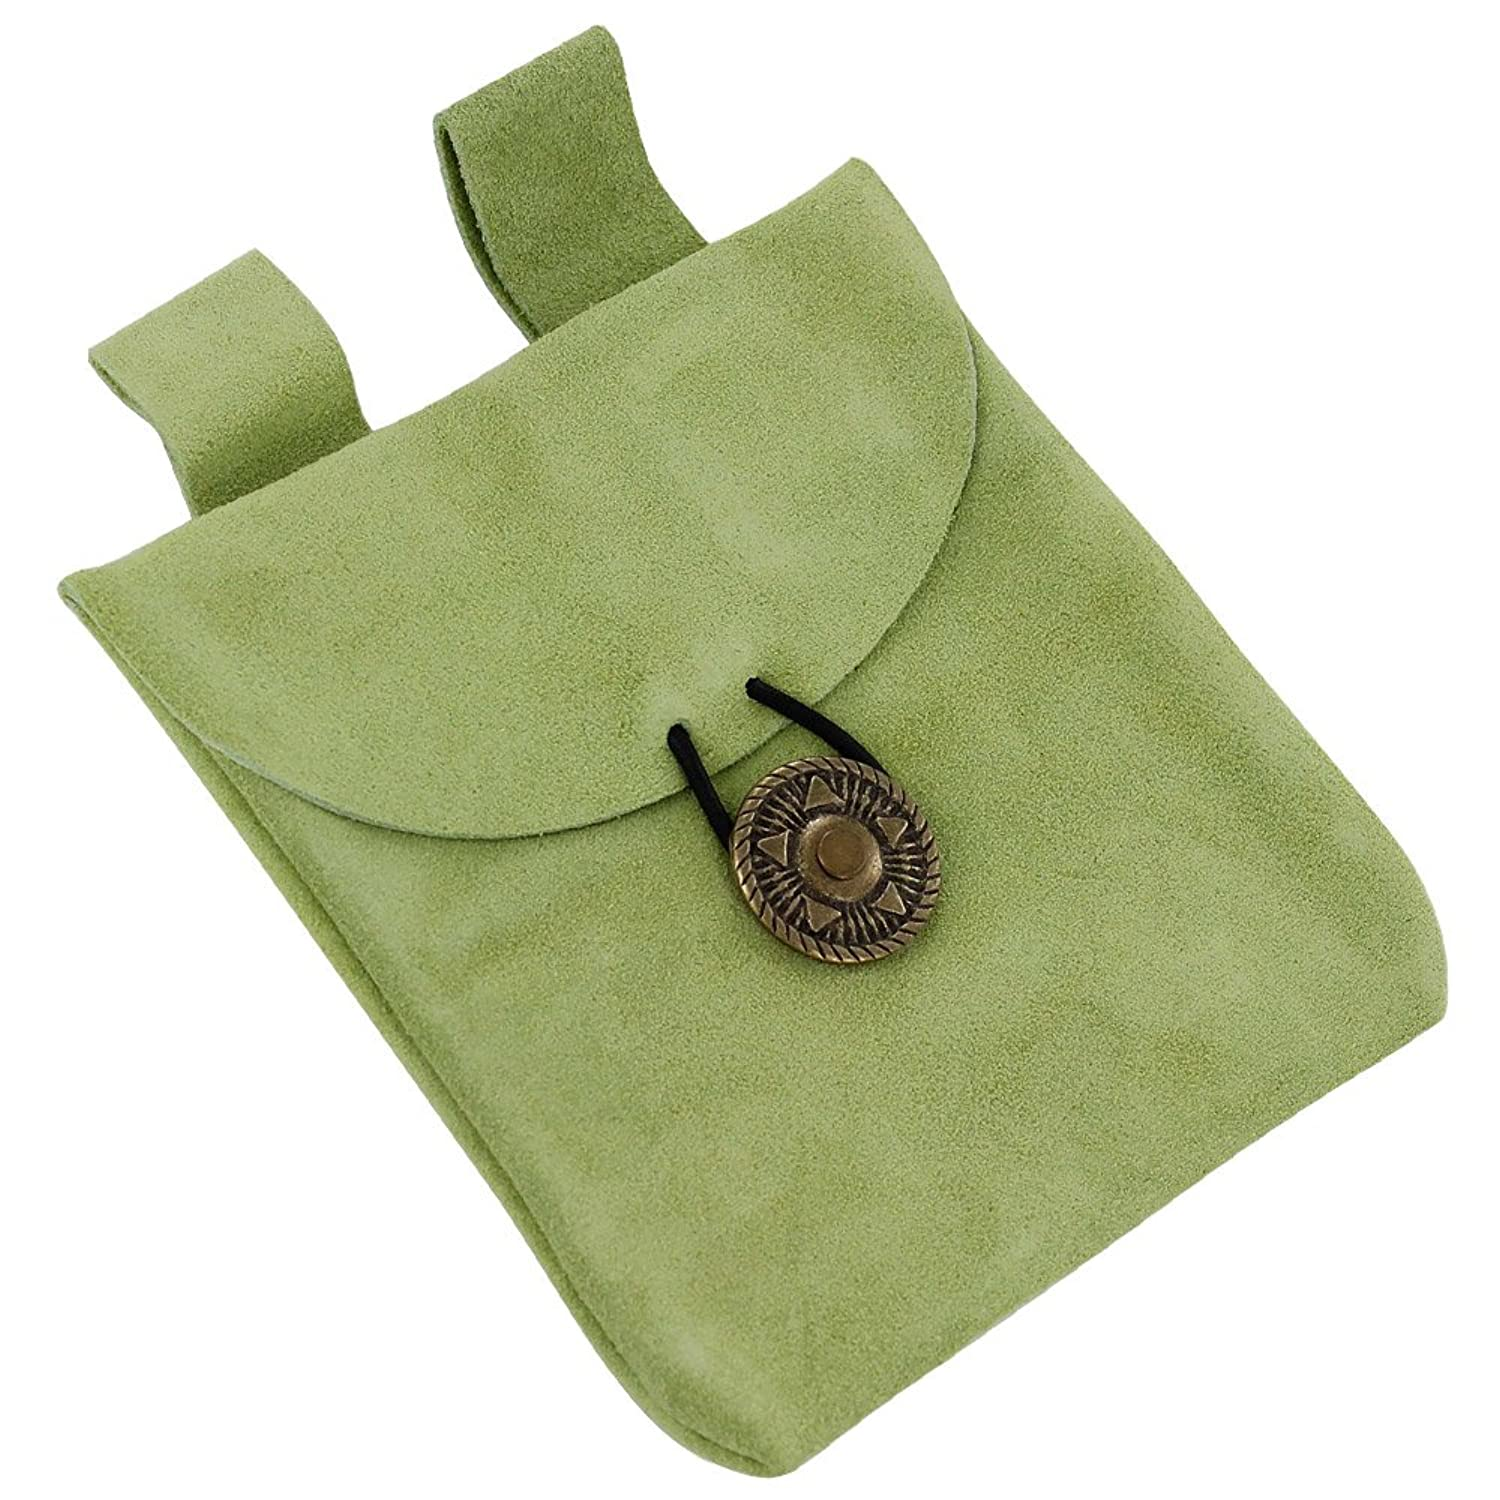 Deluxe Adult Costumes - Growth of life green small suede leather pouch